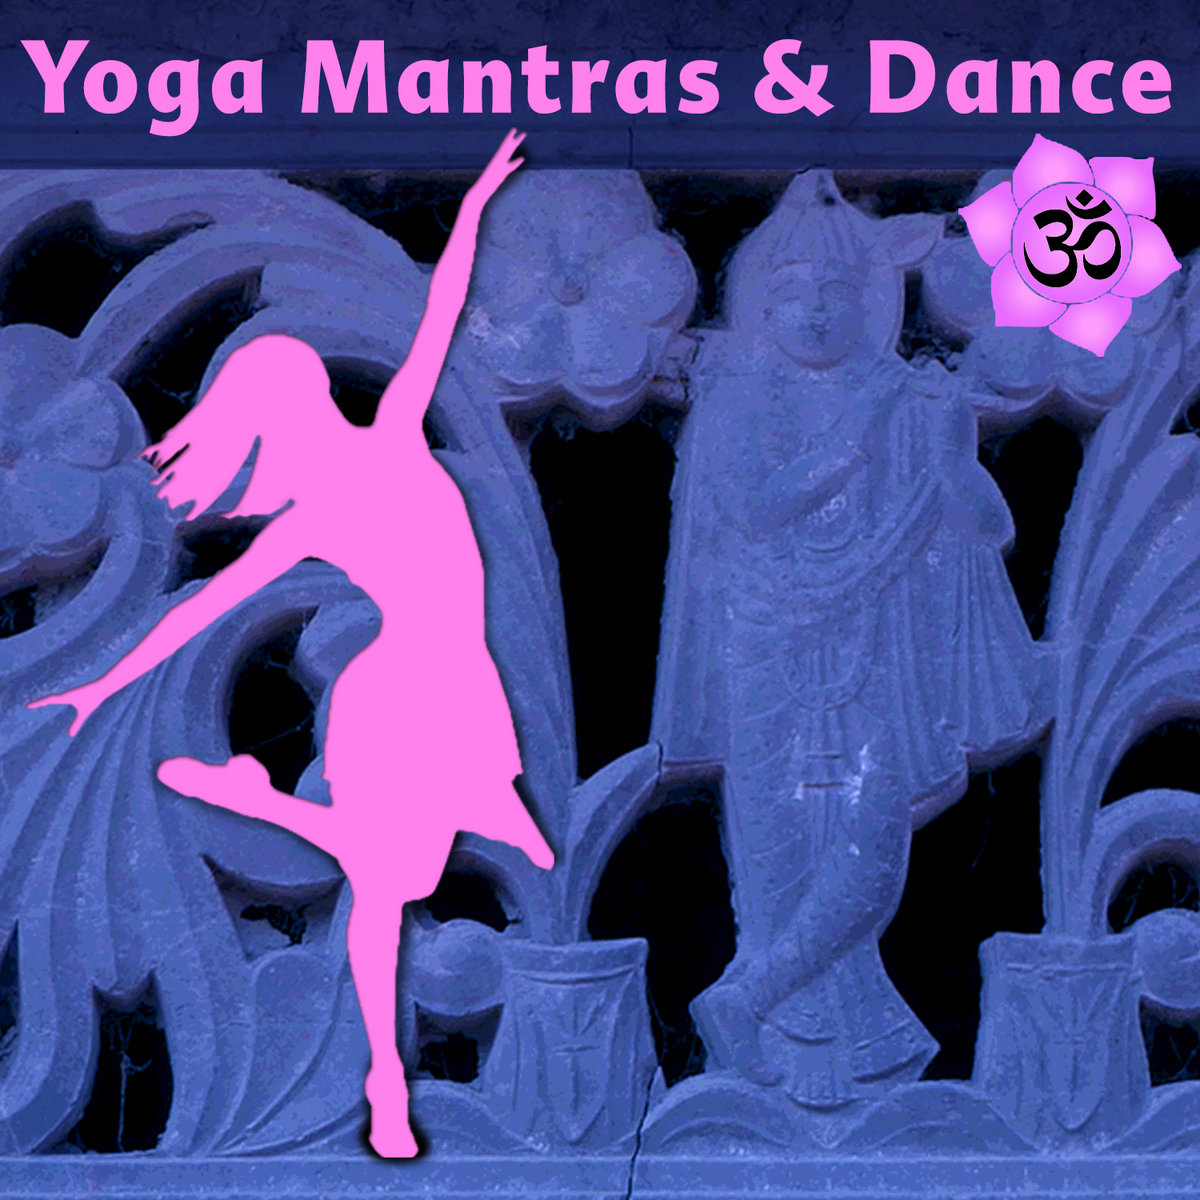 Yoga Mantras & Dance: Power Yoga Music & Ecstatic Dance